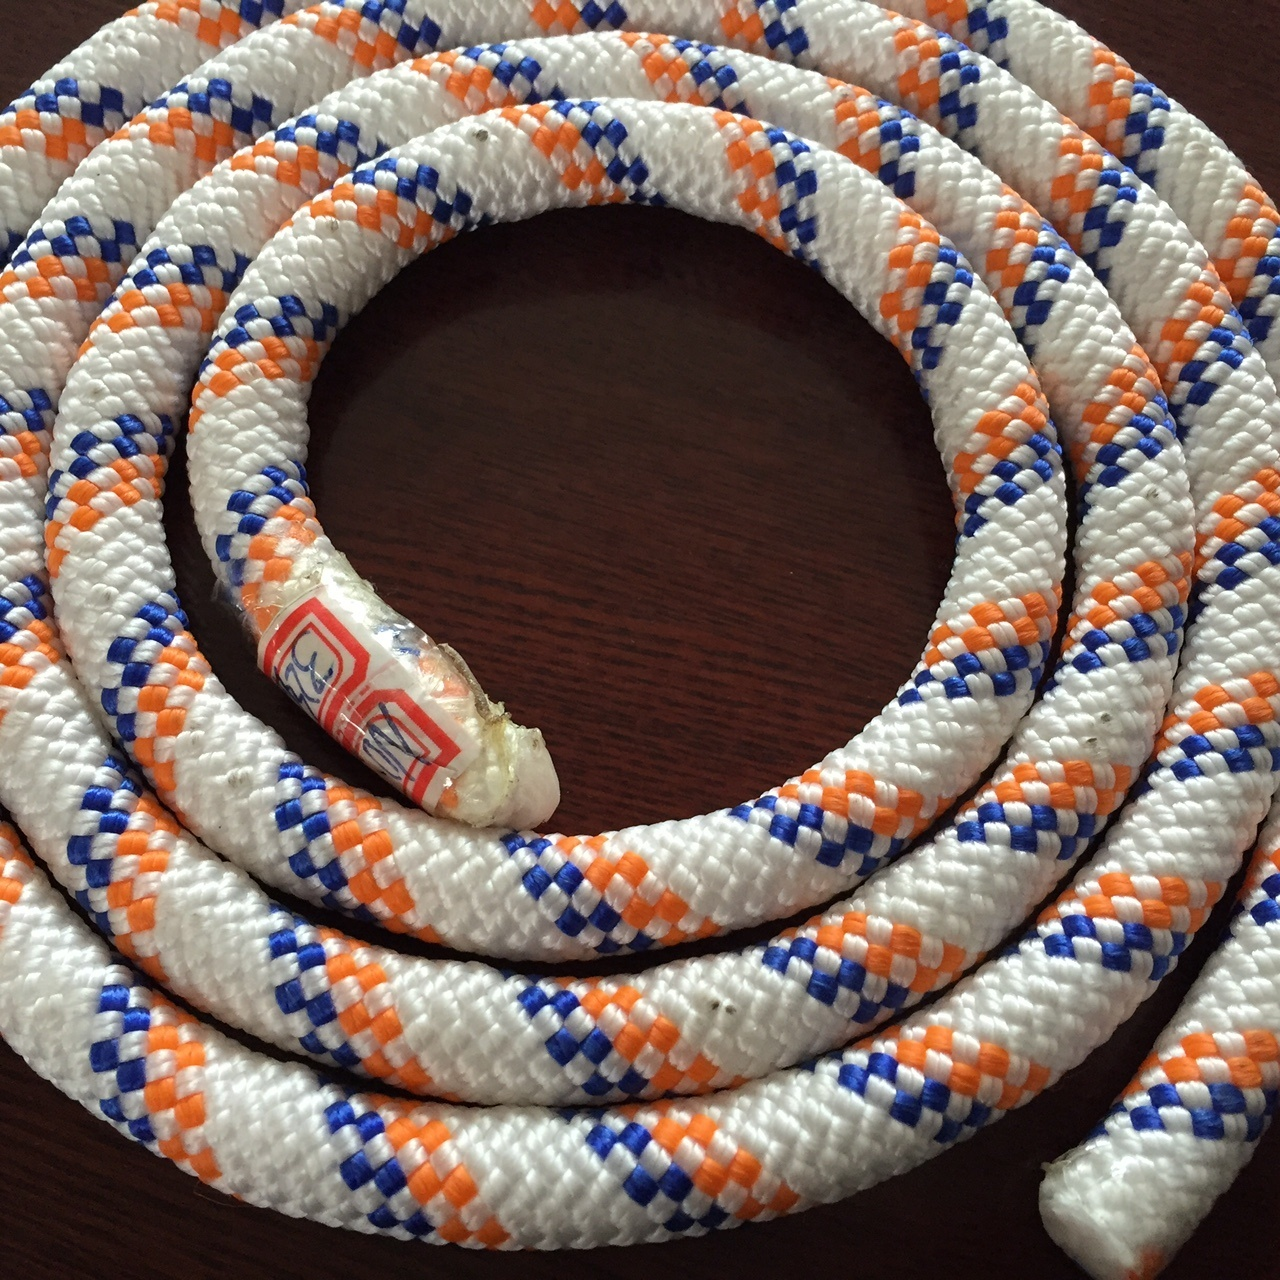 High qualitybraided ropelifting ropefor winch or sailing, etc